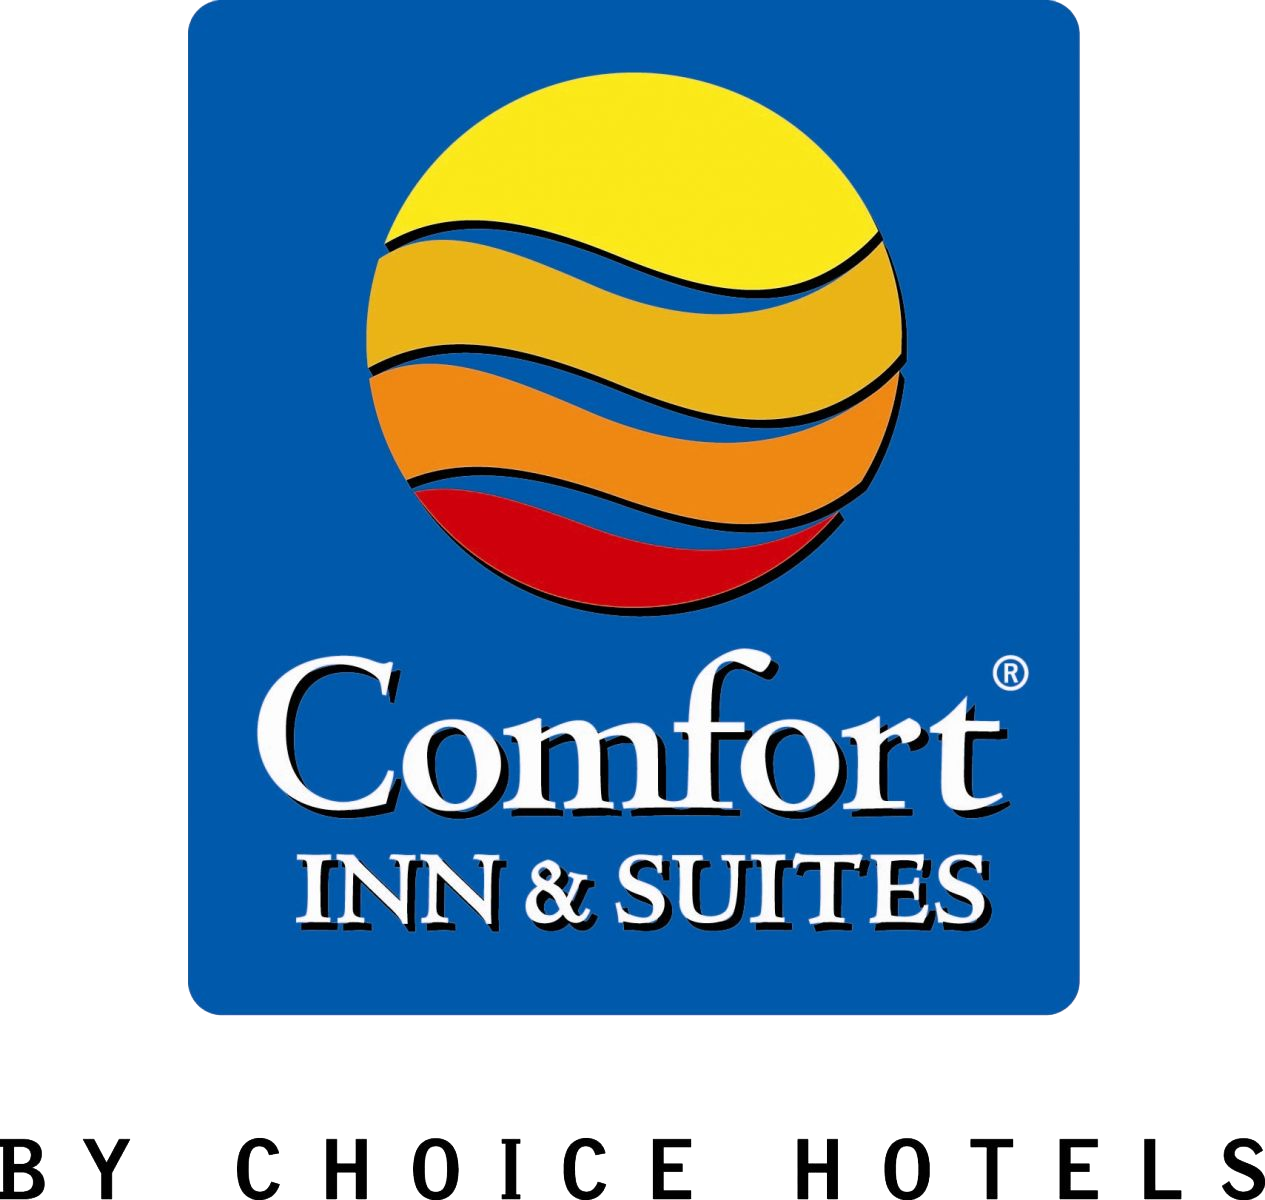 Comfort Inn & Suites Logo Image, Stay And Play Golf Michigan - Bucks Run Golf Club